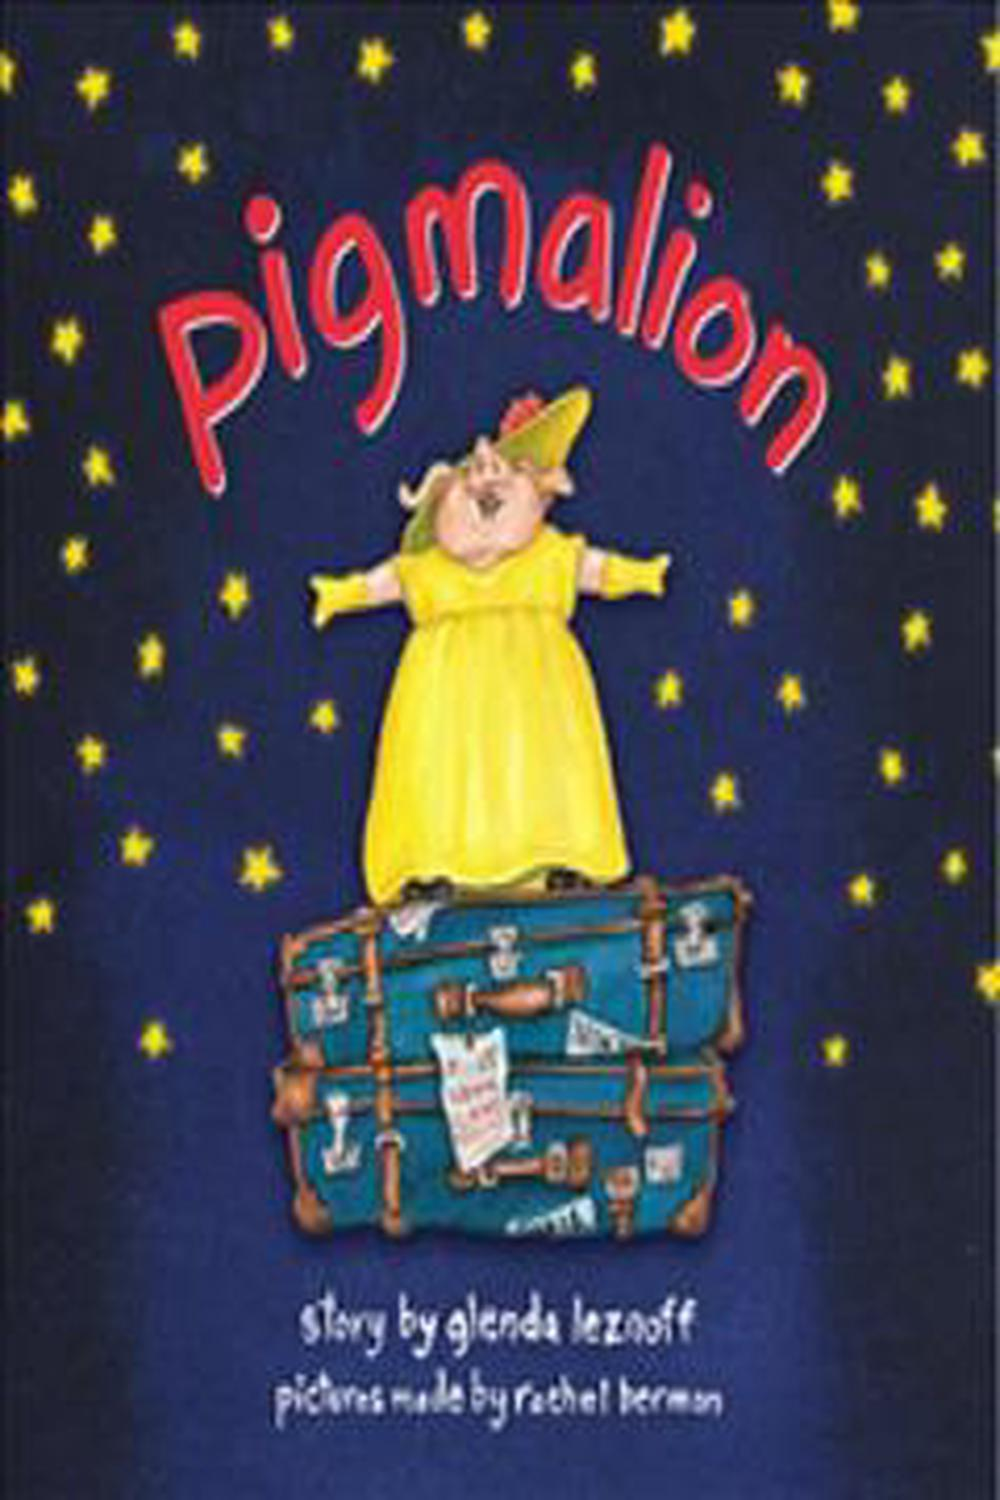 Pigmalion Libro Details About Pigmalion By Glenda Leznoff English Hardcover Book Free Shipping